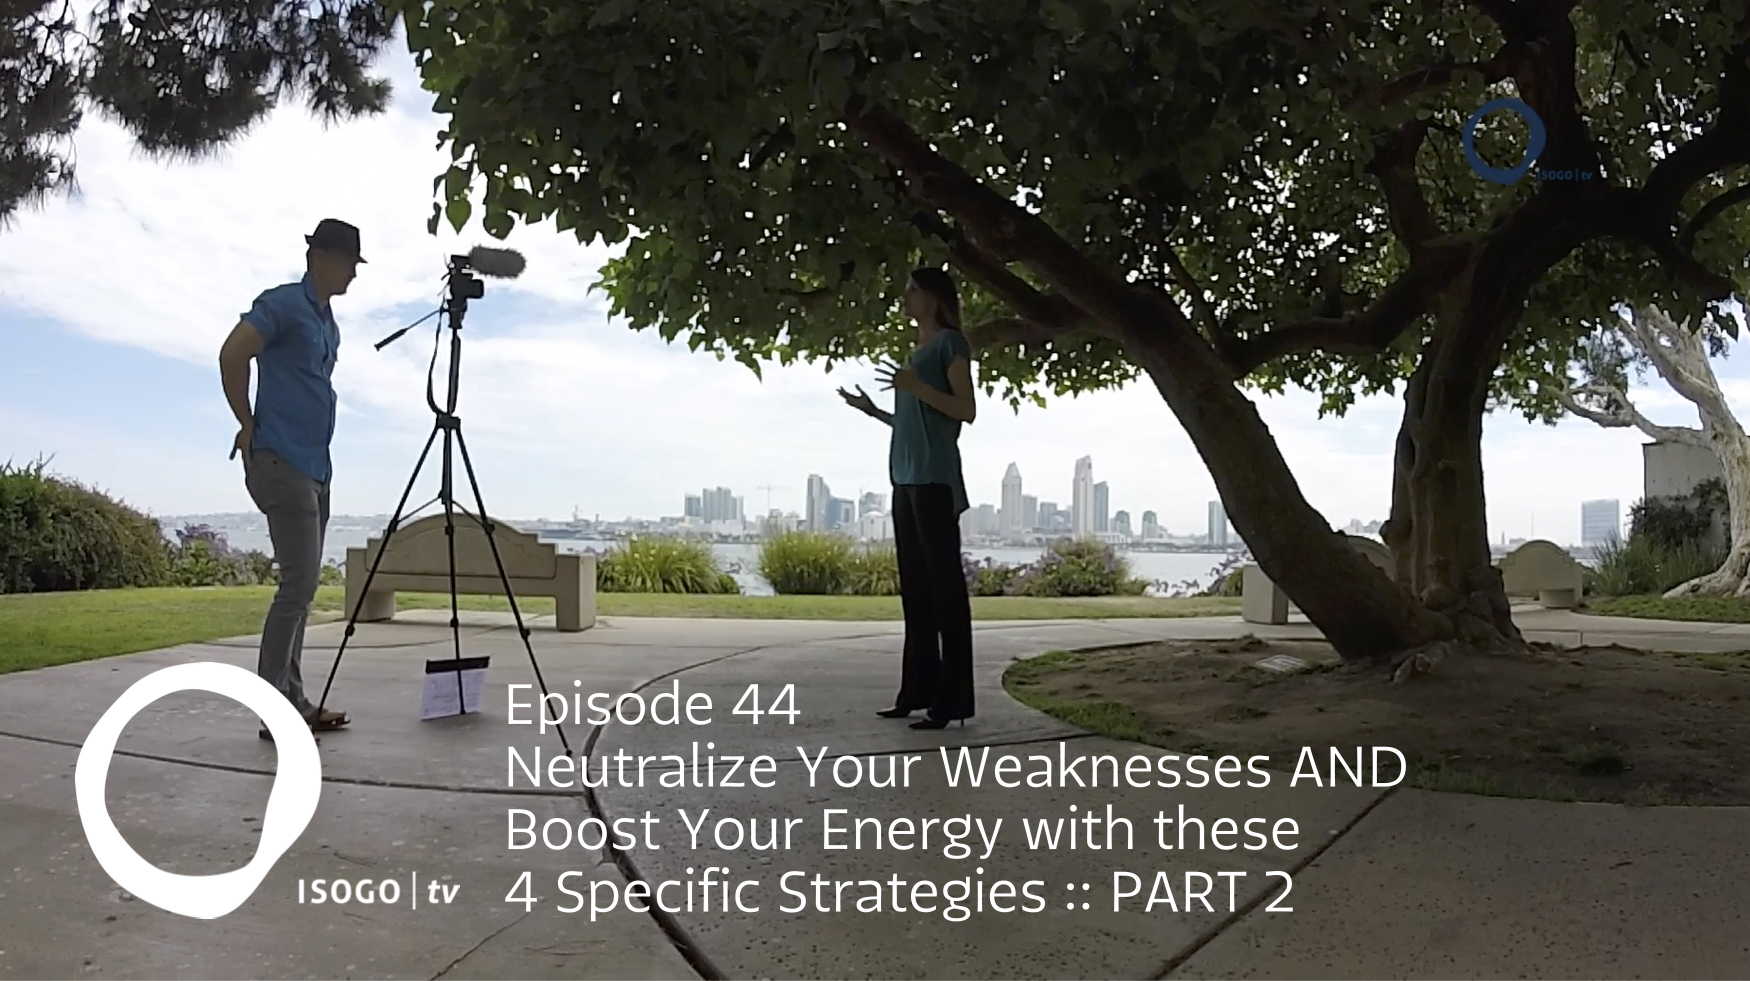 Neutralize Your Weaknesses AND Boost Your Energy with these 4 Specific Strategies :: Part 2 | Isogo TV Episode 44